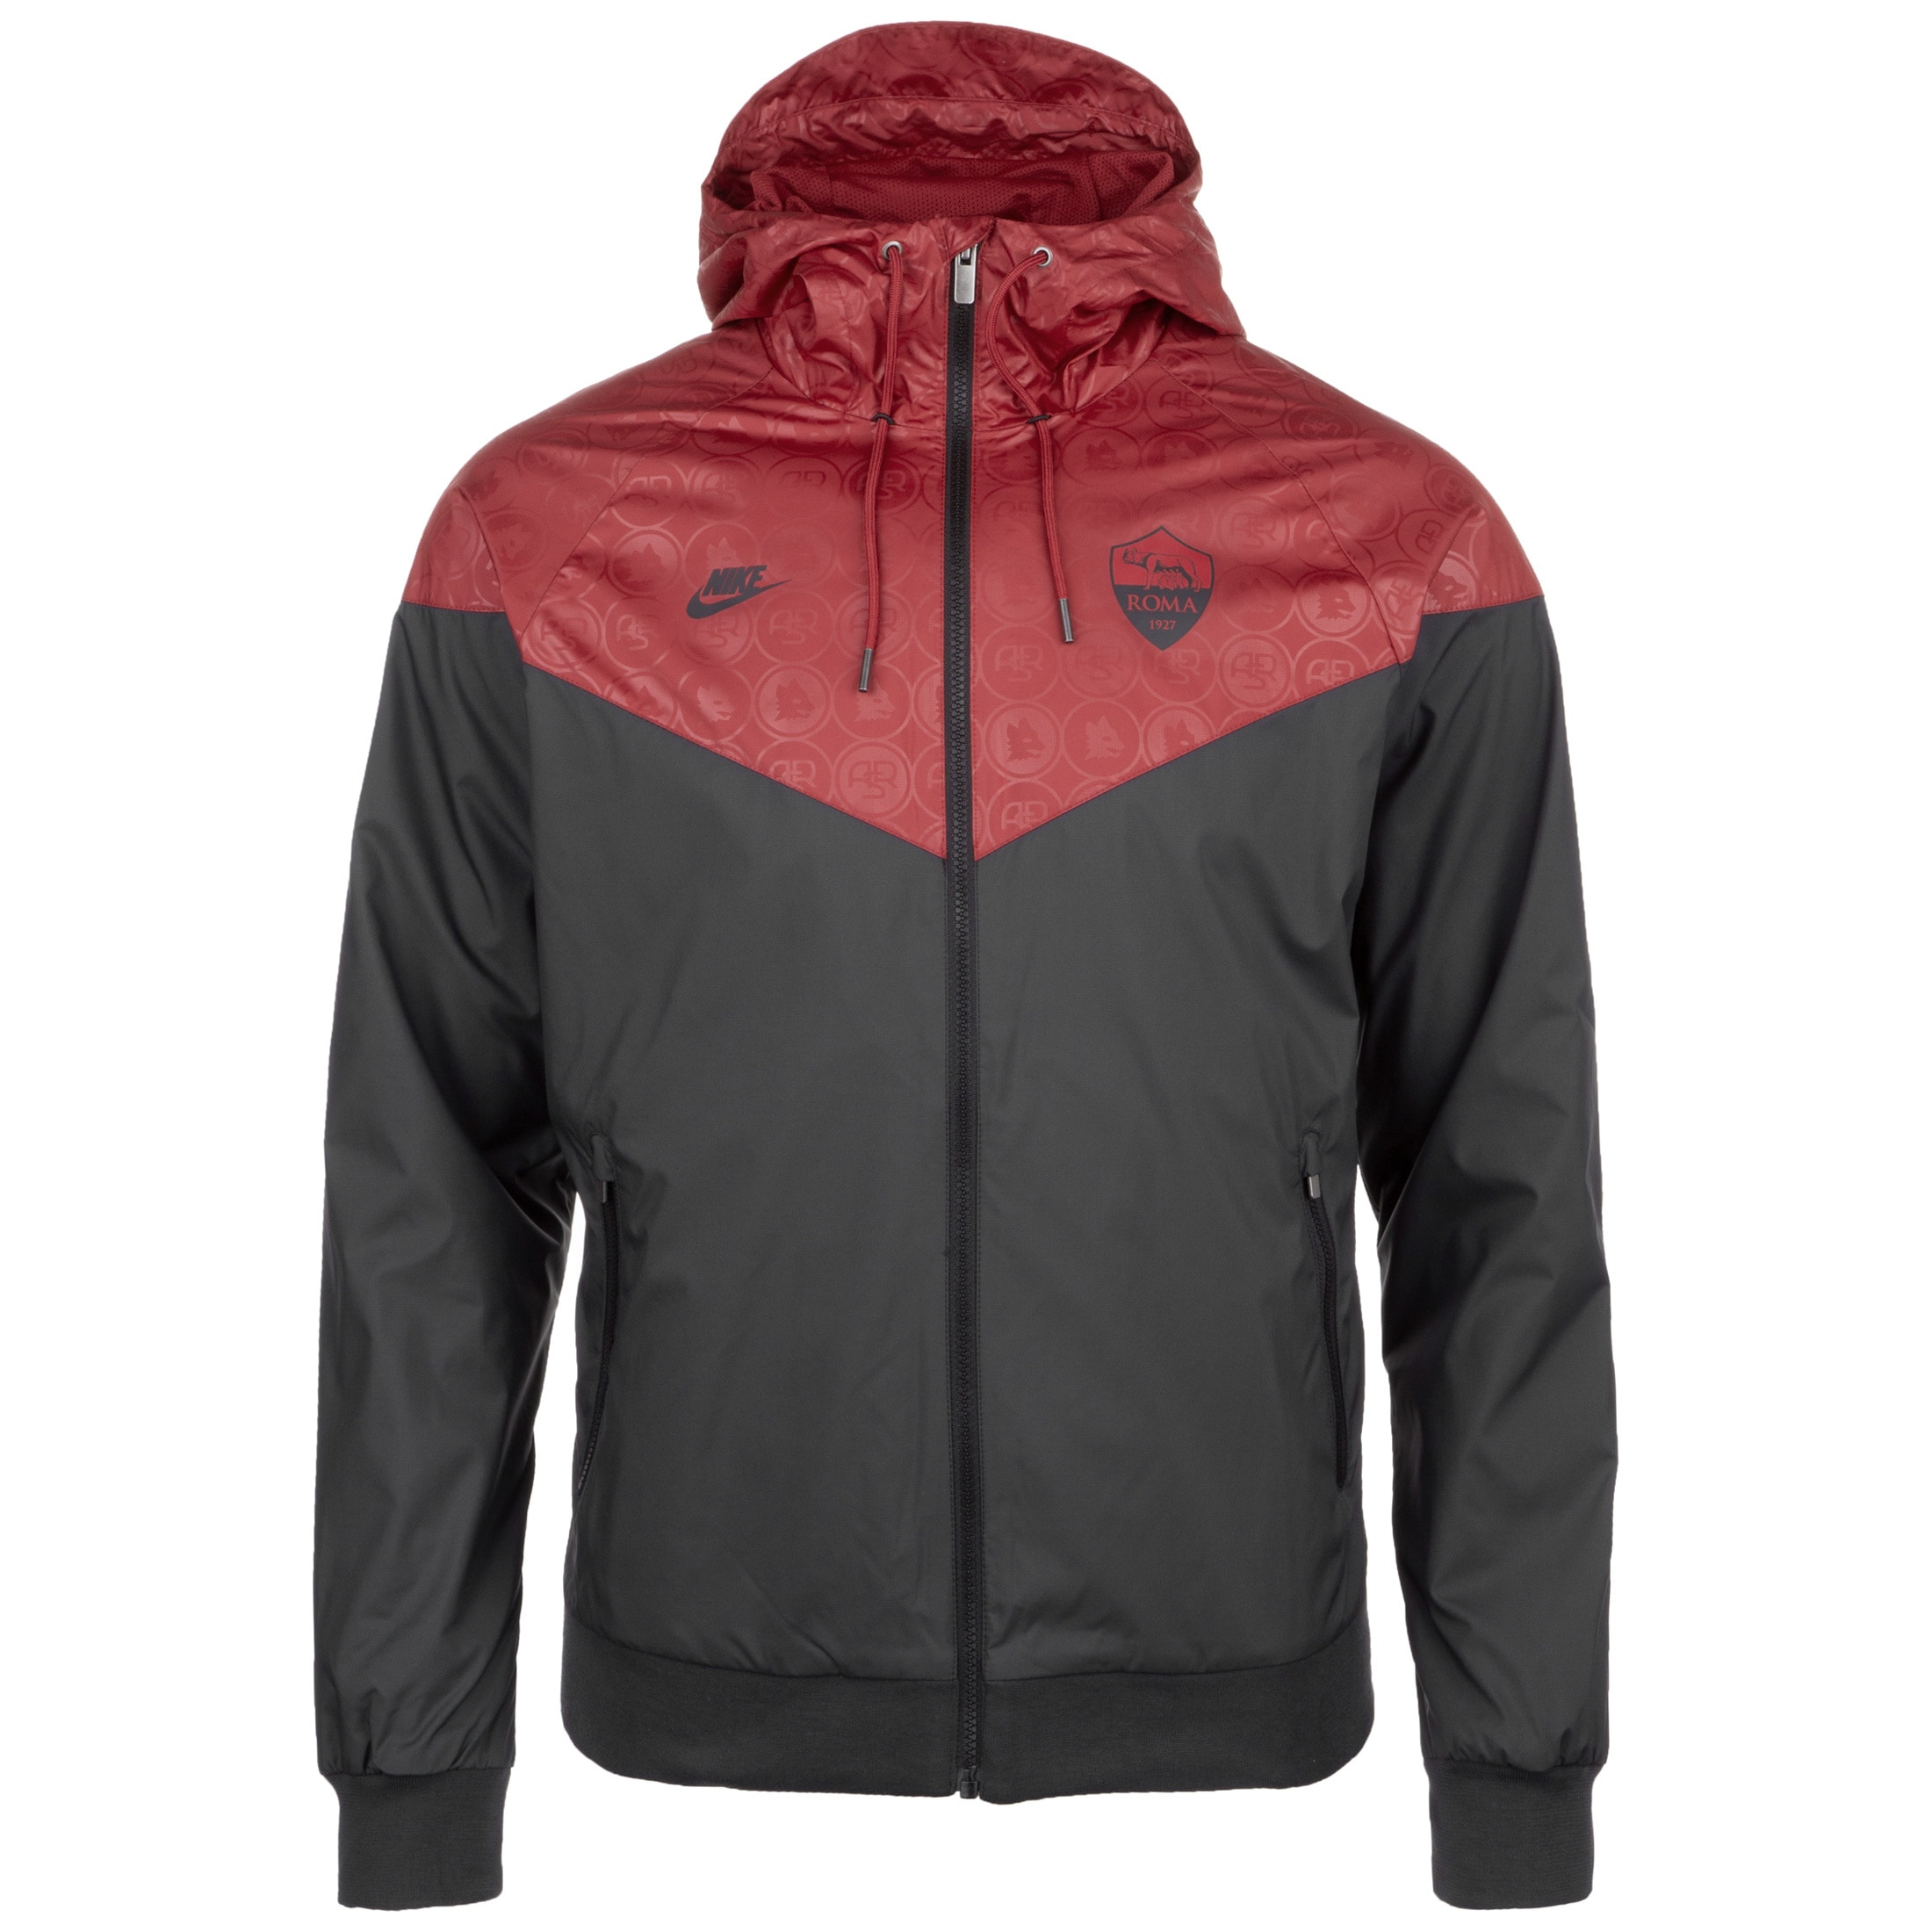 Nike Funktionsjacke As Rom Authentic Windrunner | Bekleidung > Jacken > Funktionsjacken | Nike